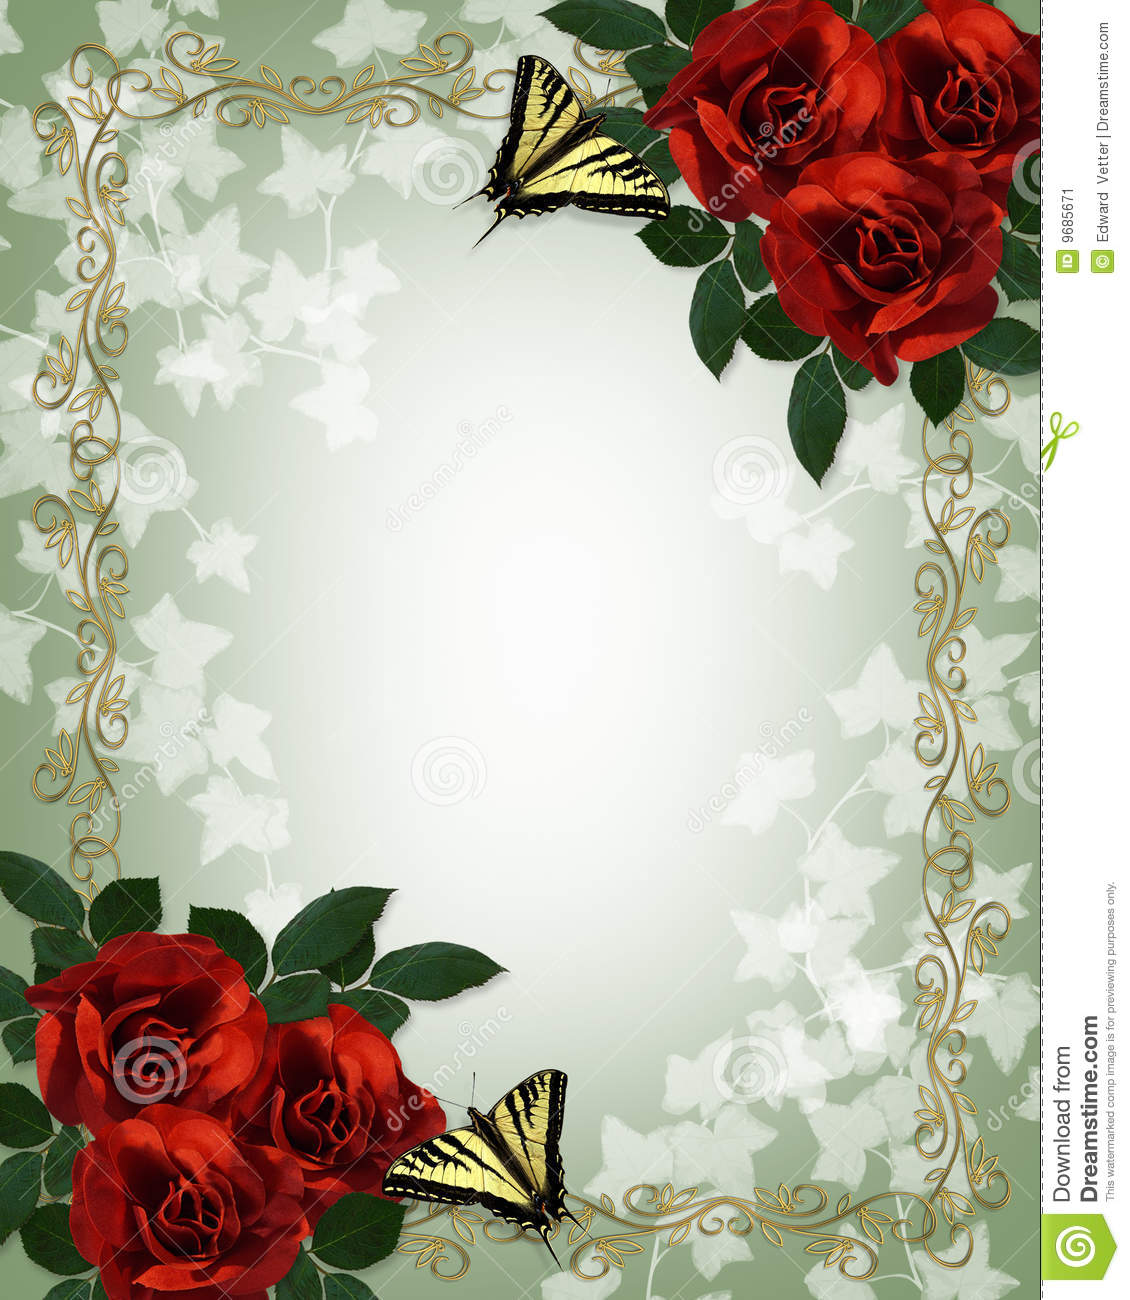 Wedding Floral Border Red Roses Butterflies Stock Image - Image: 9685671